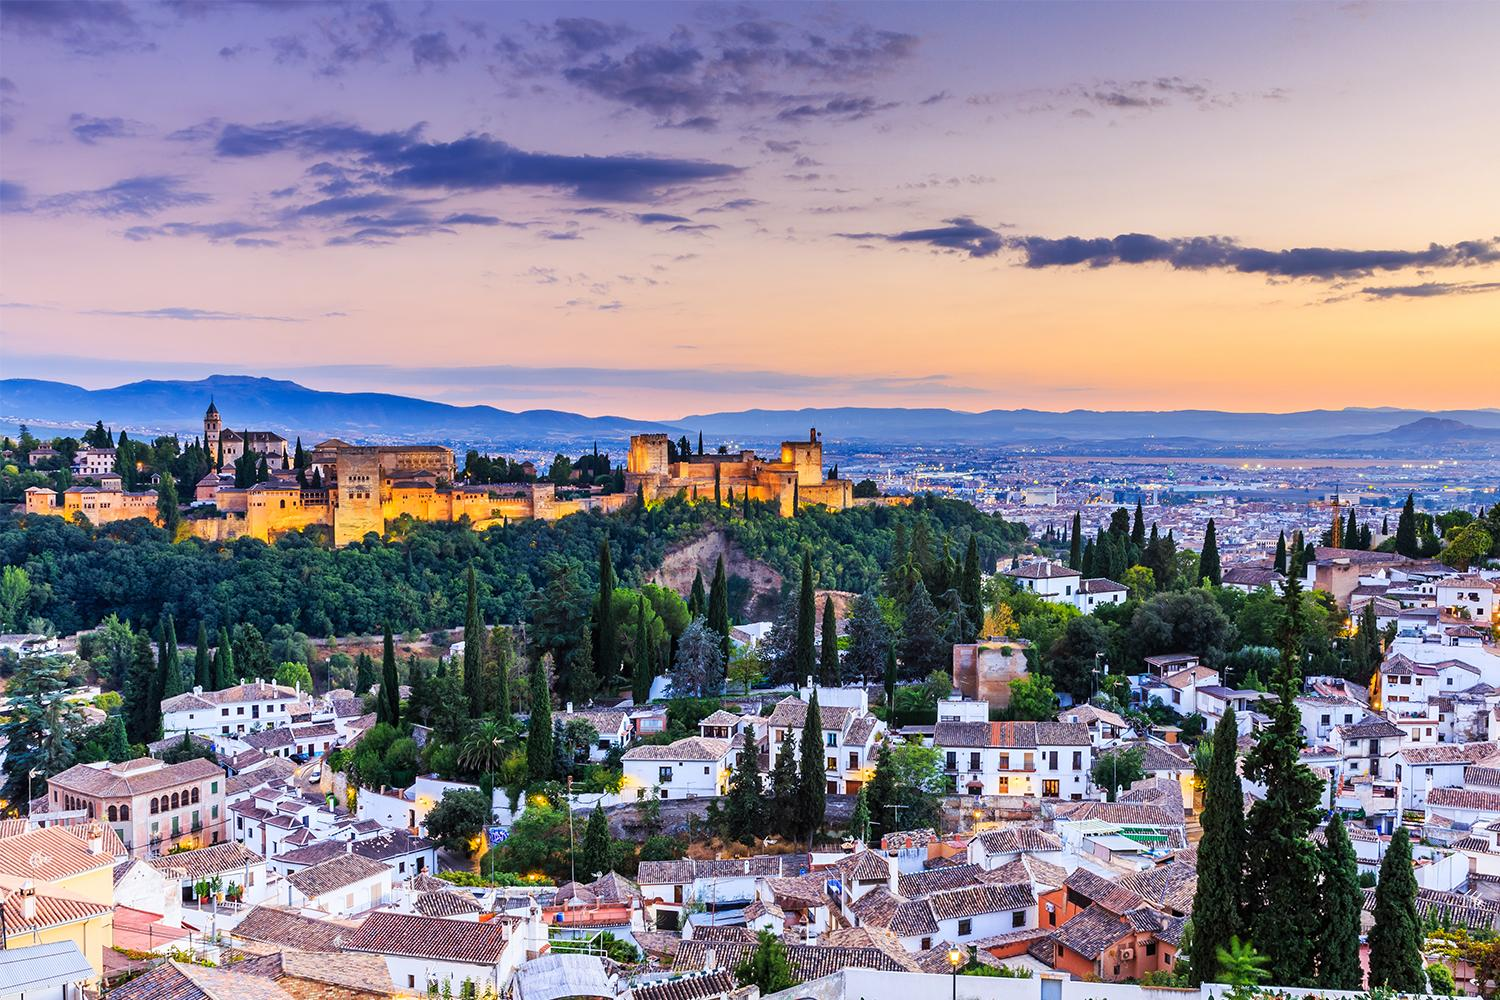 Take in the culture, delicious food and medieval architecture in the fantastic city of Granada